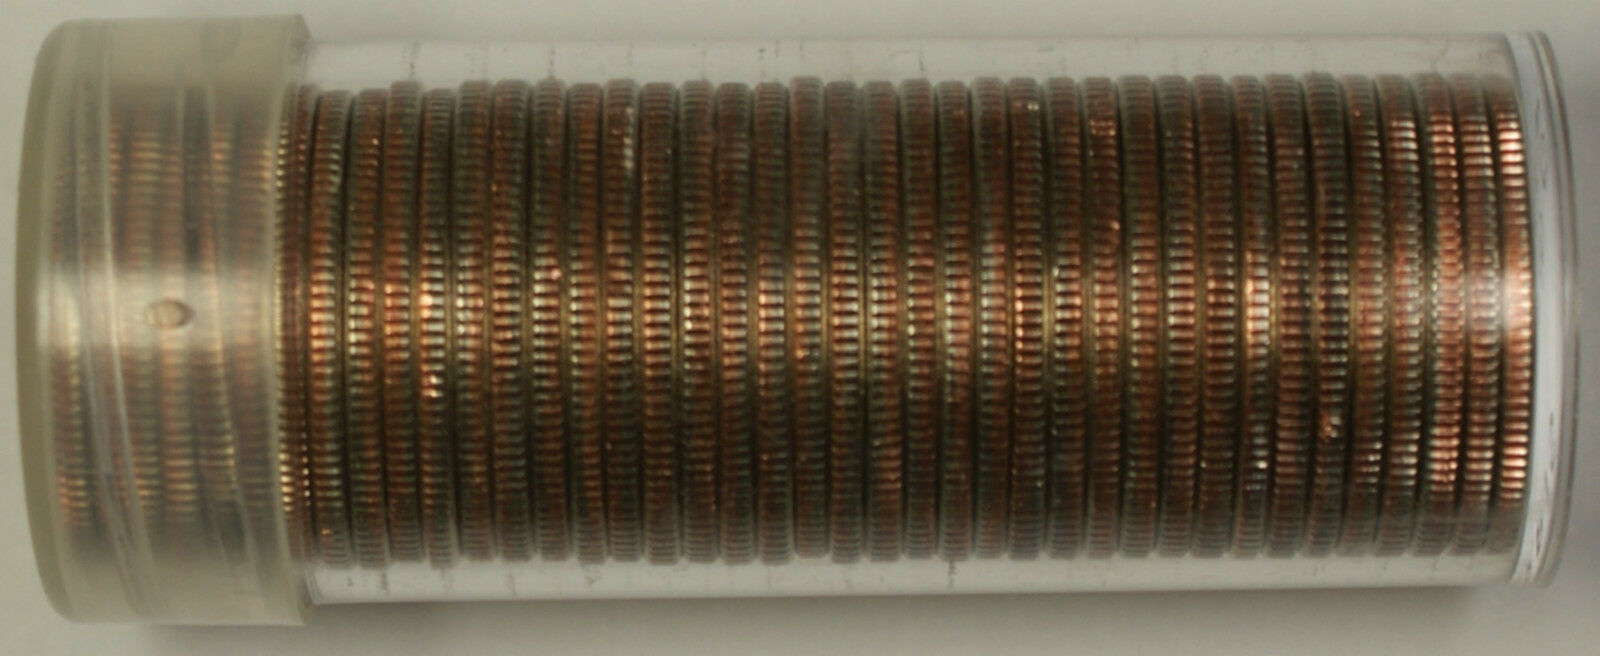 2003 D Illinois State Quarter BU Roll- 40 Coins